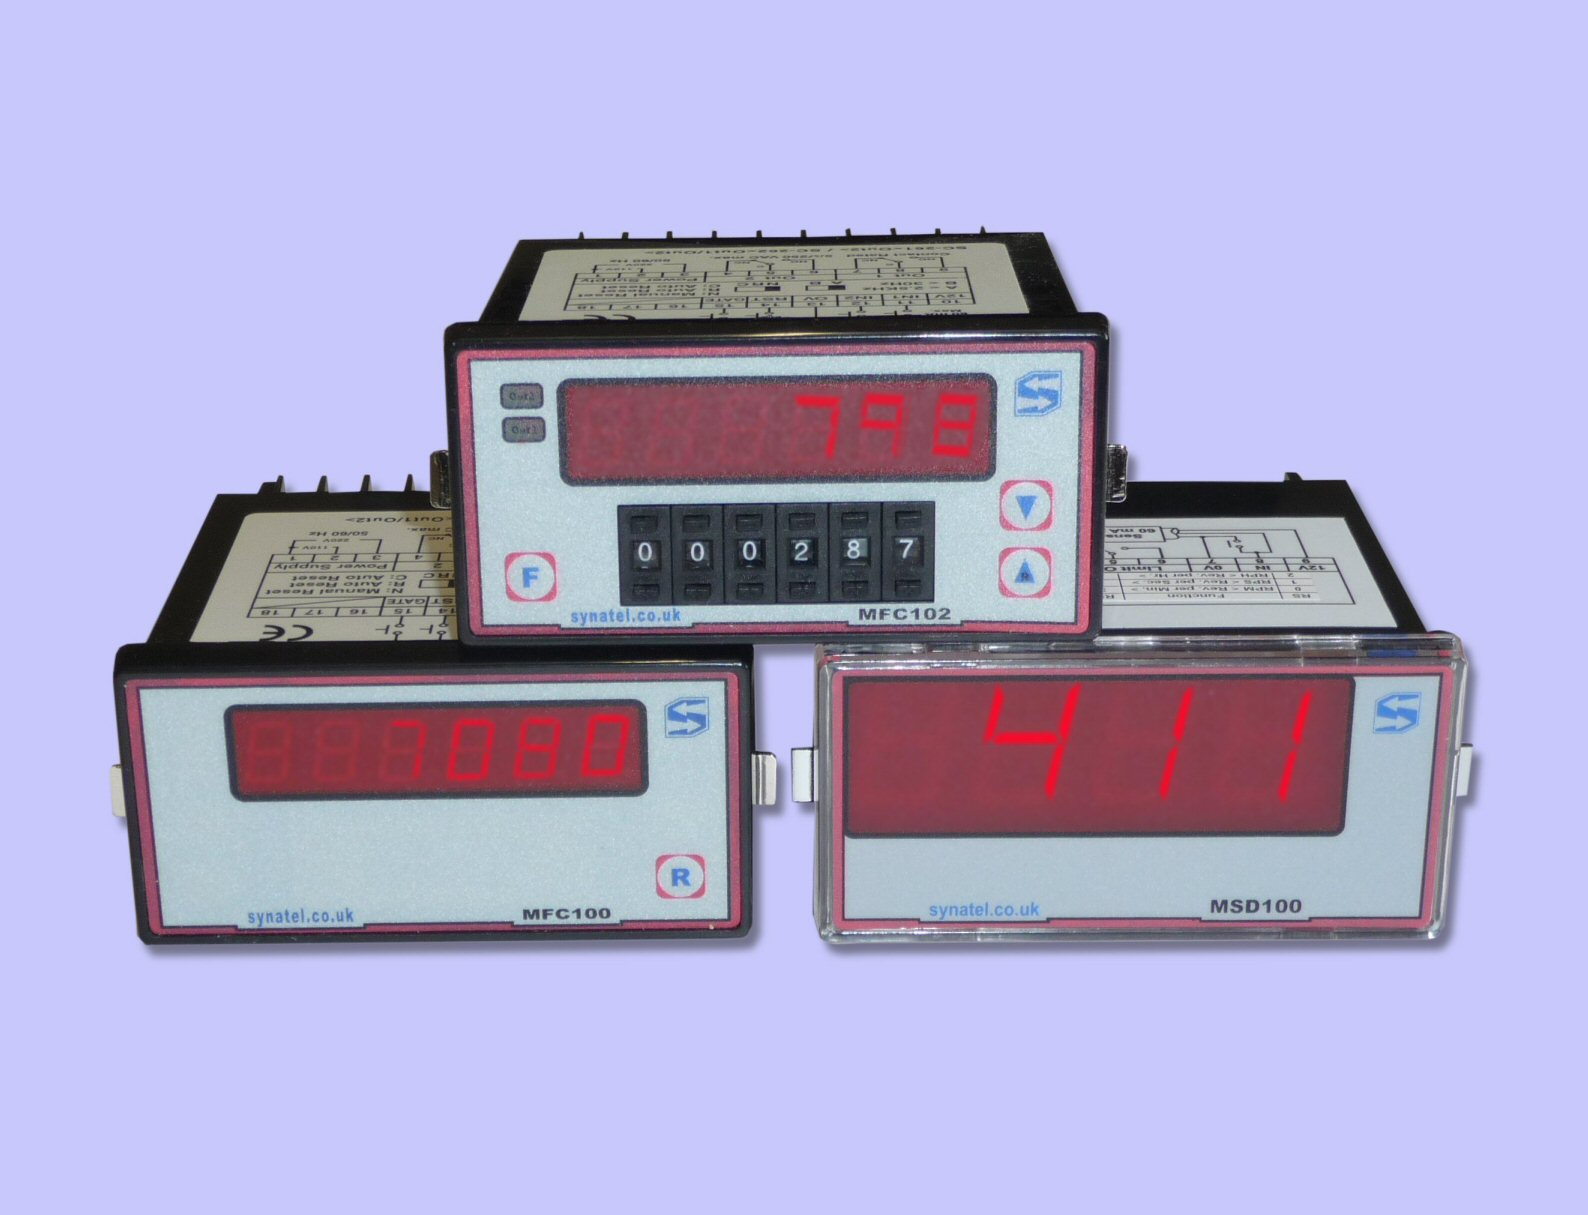 MULTICOUNT Digital Counter/Speed Display Units